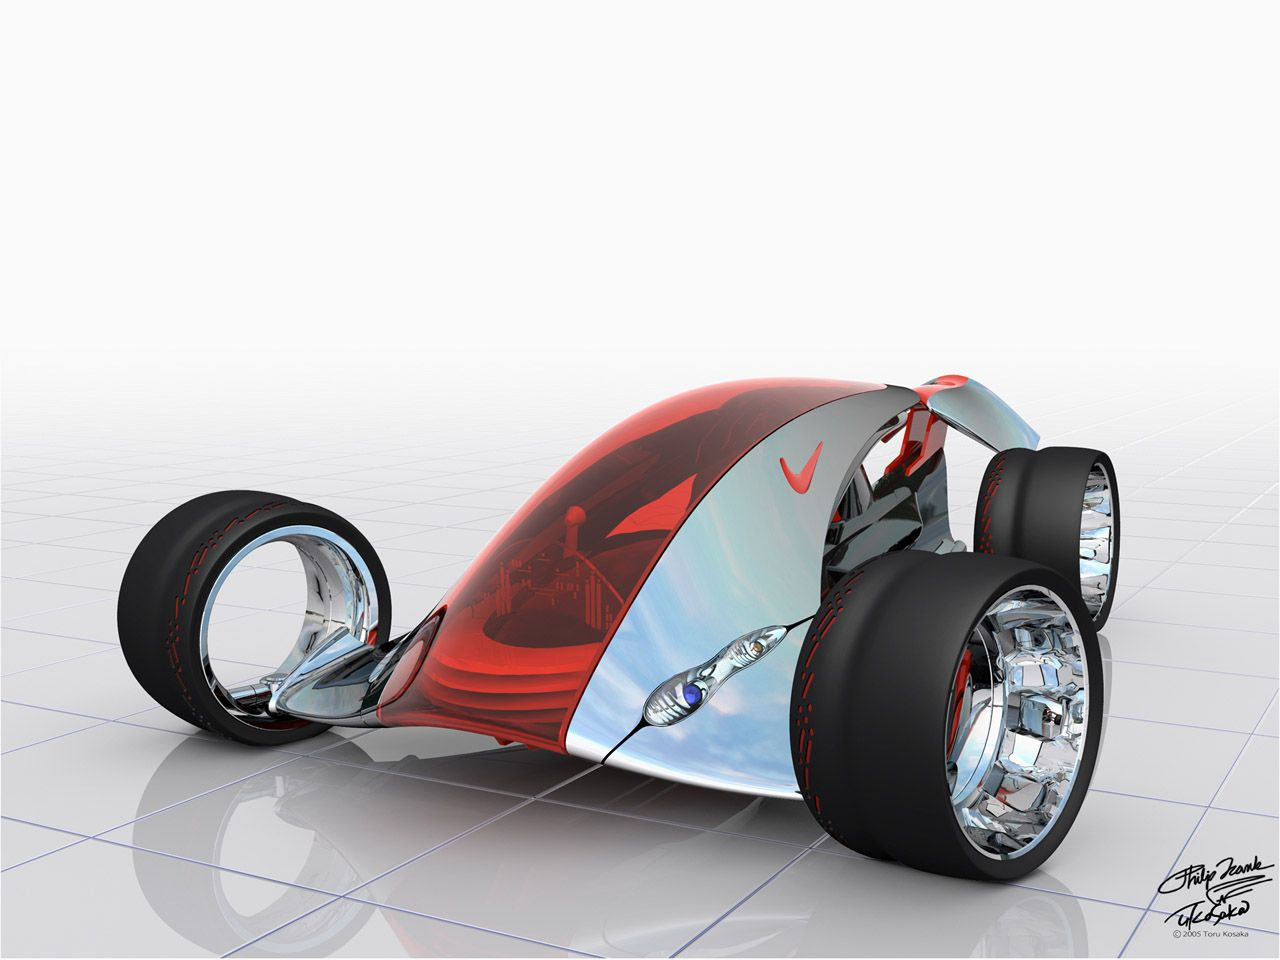 Nike One Vision Gt Gran Turismo Pinterest Cars Concept The Bmw I1 Is An Electric Singleseater Trikecar By Designer Car Wallpapers Future Motorcycles